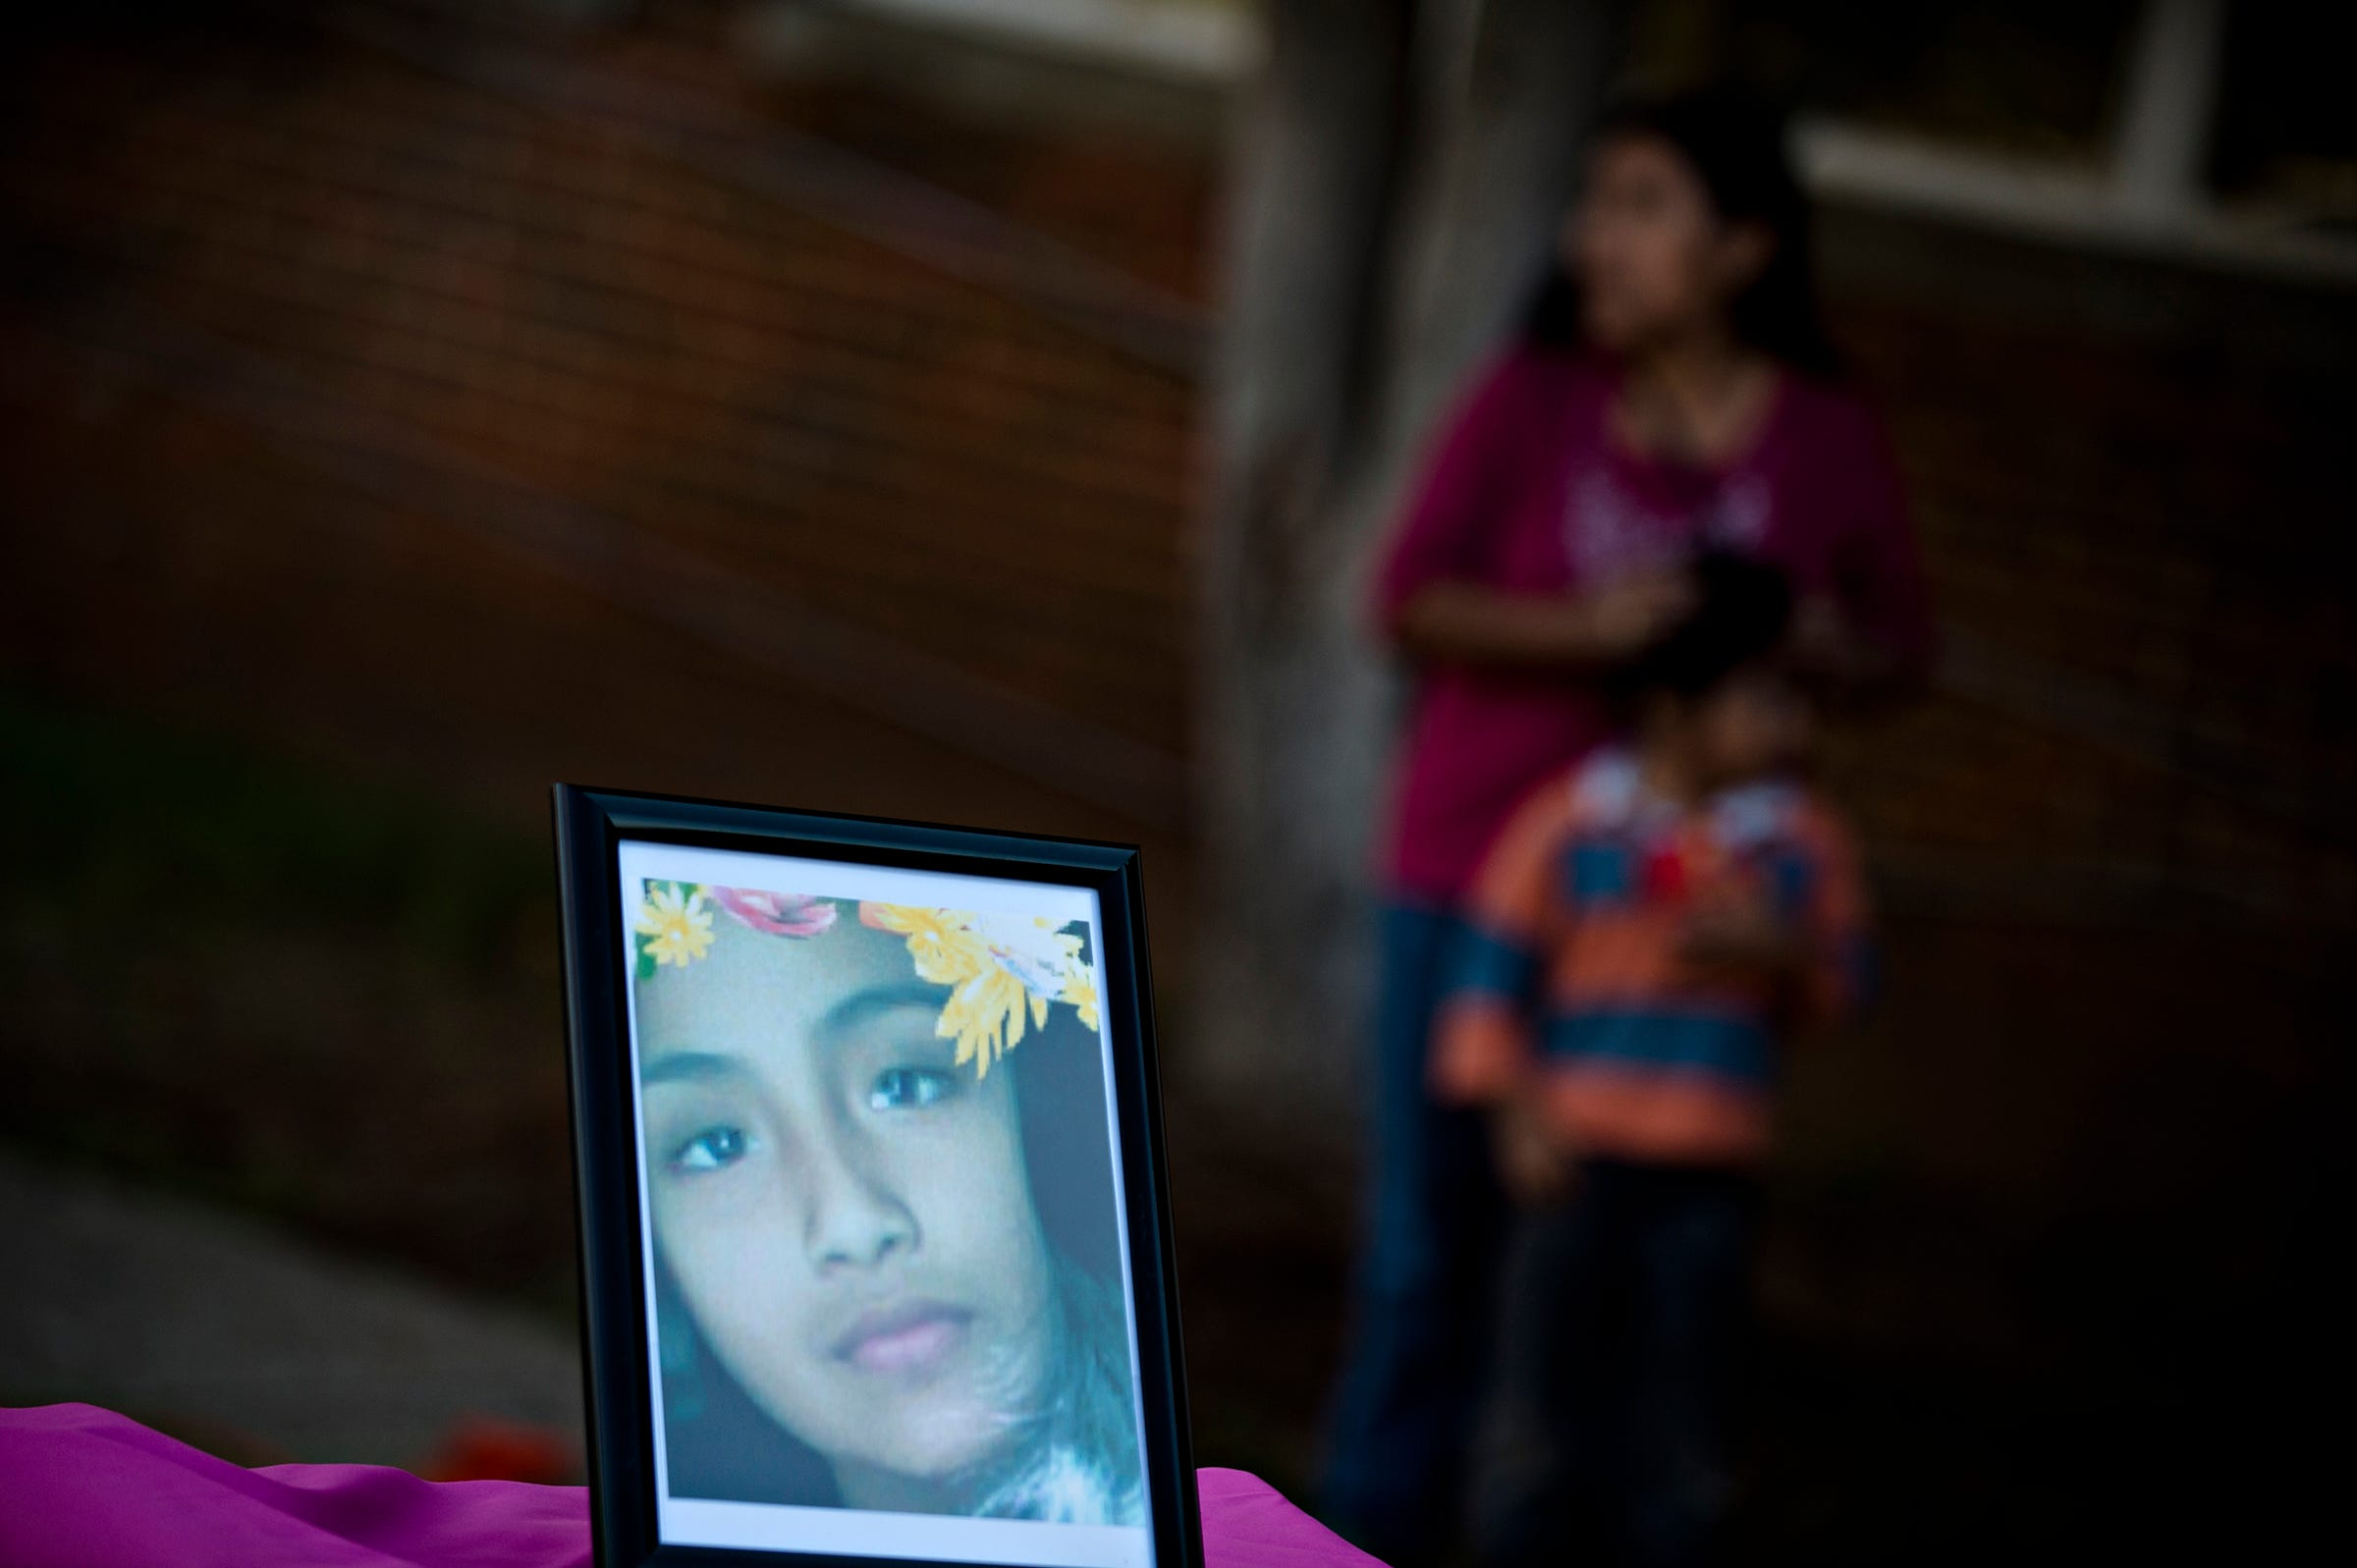 A picture of shooting victim Maribel Rosales Barrera during a tree dedication ceremony for Maribel Rosales Barrera on Friday, March 31, 2017, at Capitol Heights Middle School in Montgomery, Ala. Maribel Rosales Barrera, 13, was shot and died on Park Avenue March 23, 2017. Barrera was a student at Capitol Heights Middle School.